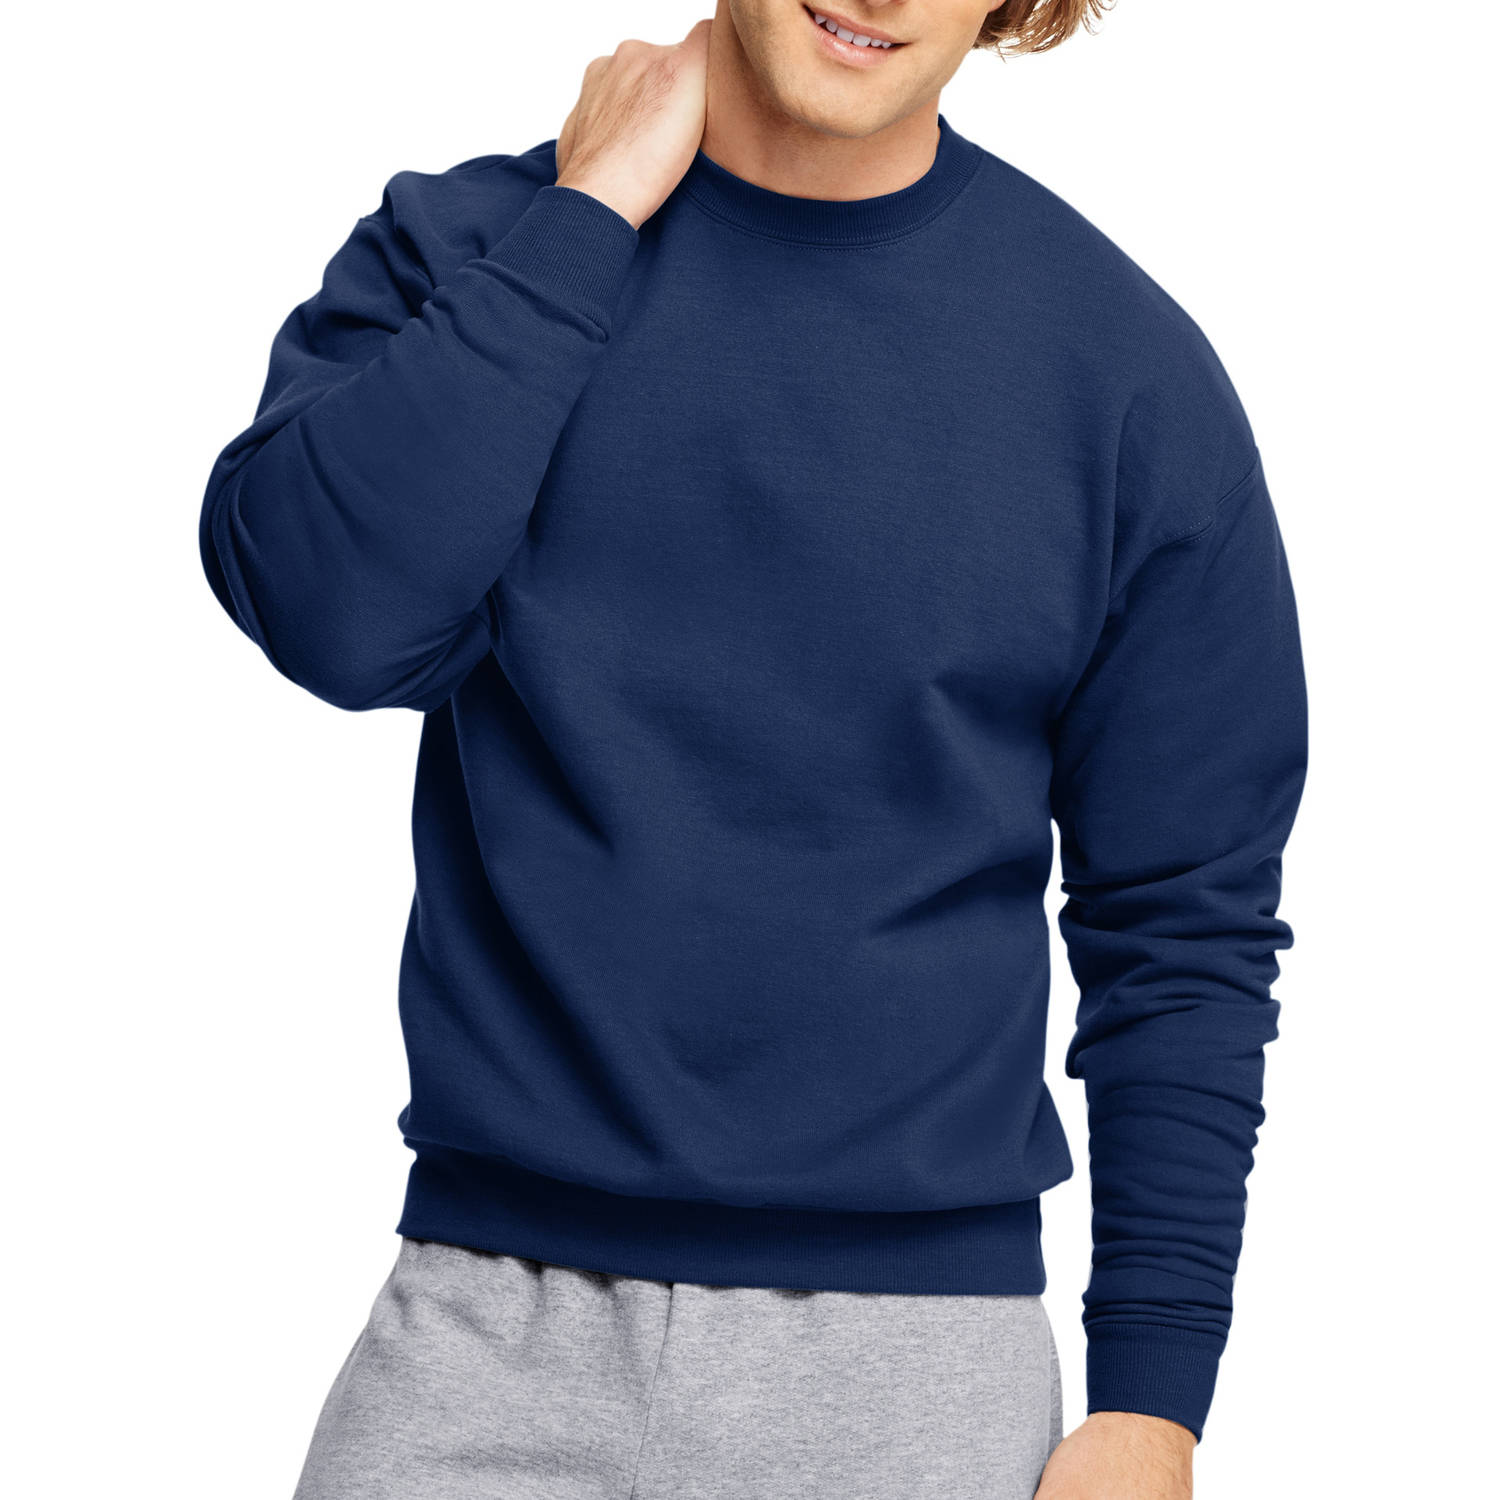 Home Crew Neck Sweatshirts & Hoodies. Filter By Press enter to collapse or expand the menu. Gender. Gender. Facet Value. Adult (1) Adult adidas Men's Sport ID Crew Short Sleeve Sweatshirt. $ Compare. Product Image. Quiksilver Men's Volcanic Ocean Crew .